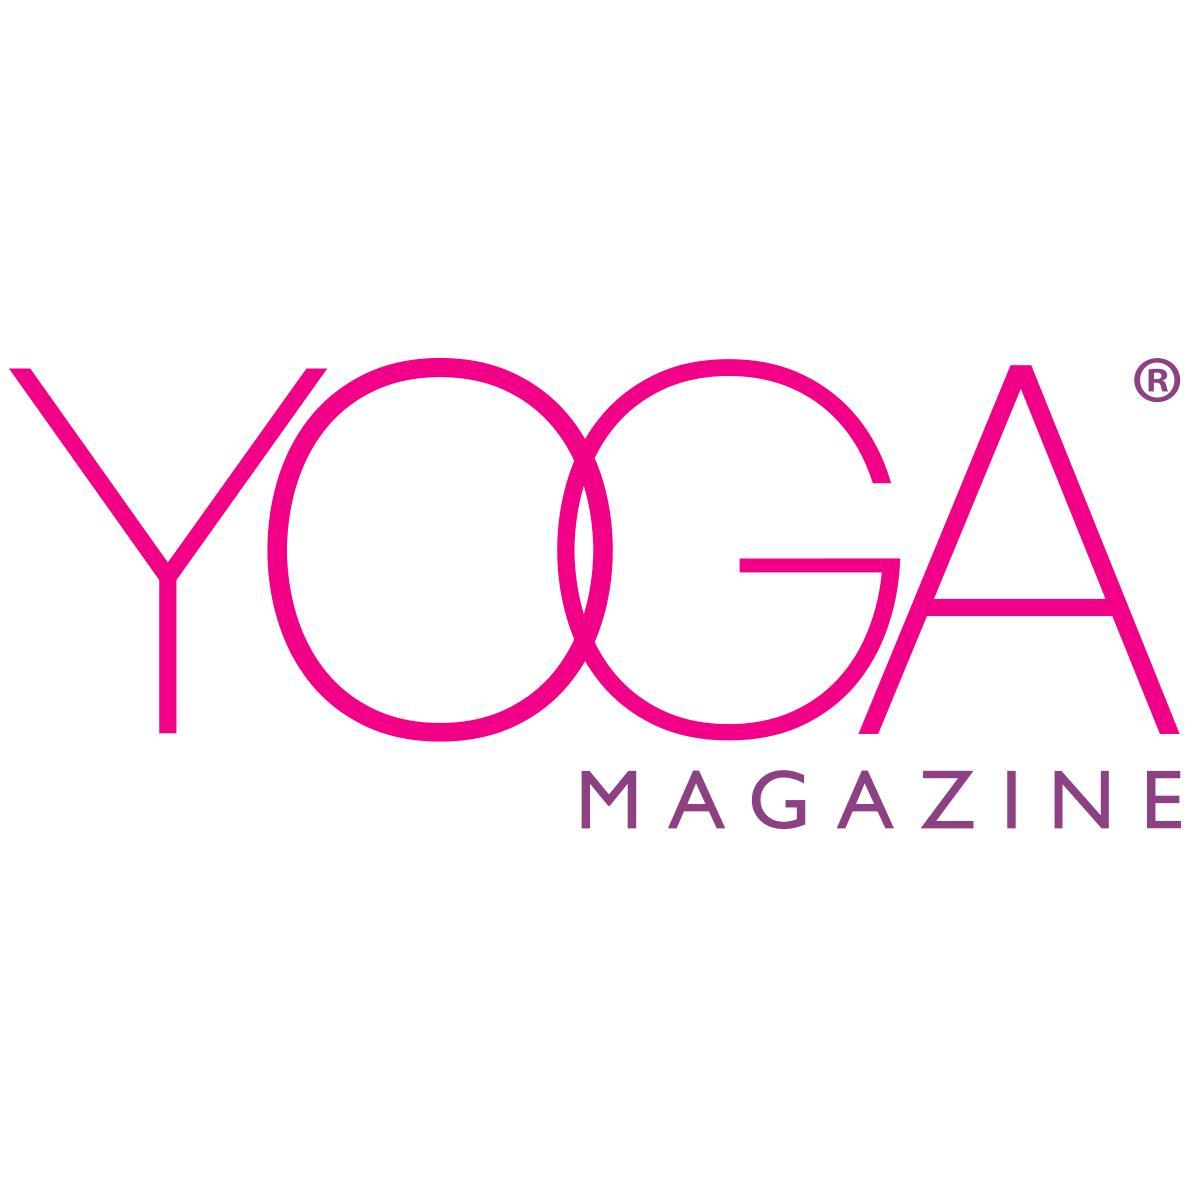 BRYT Shave for Him in Yoga Magazine, December 2016